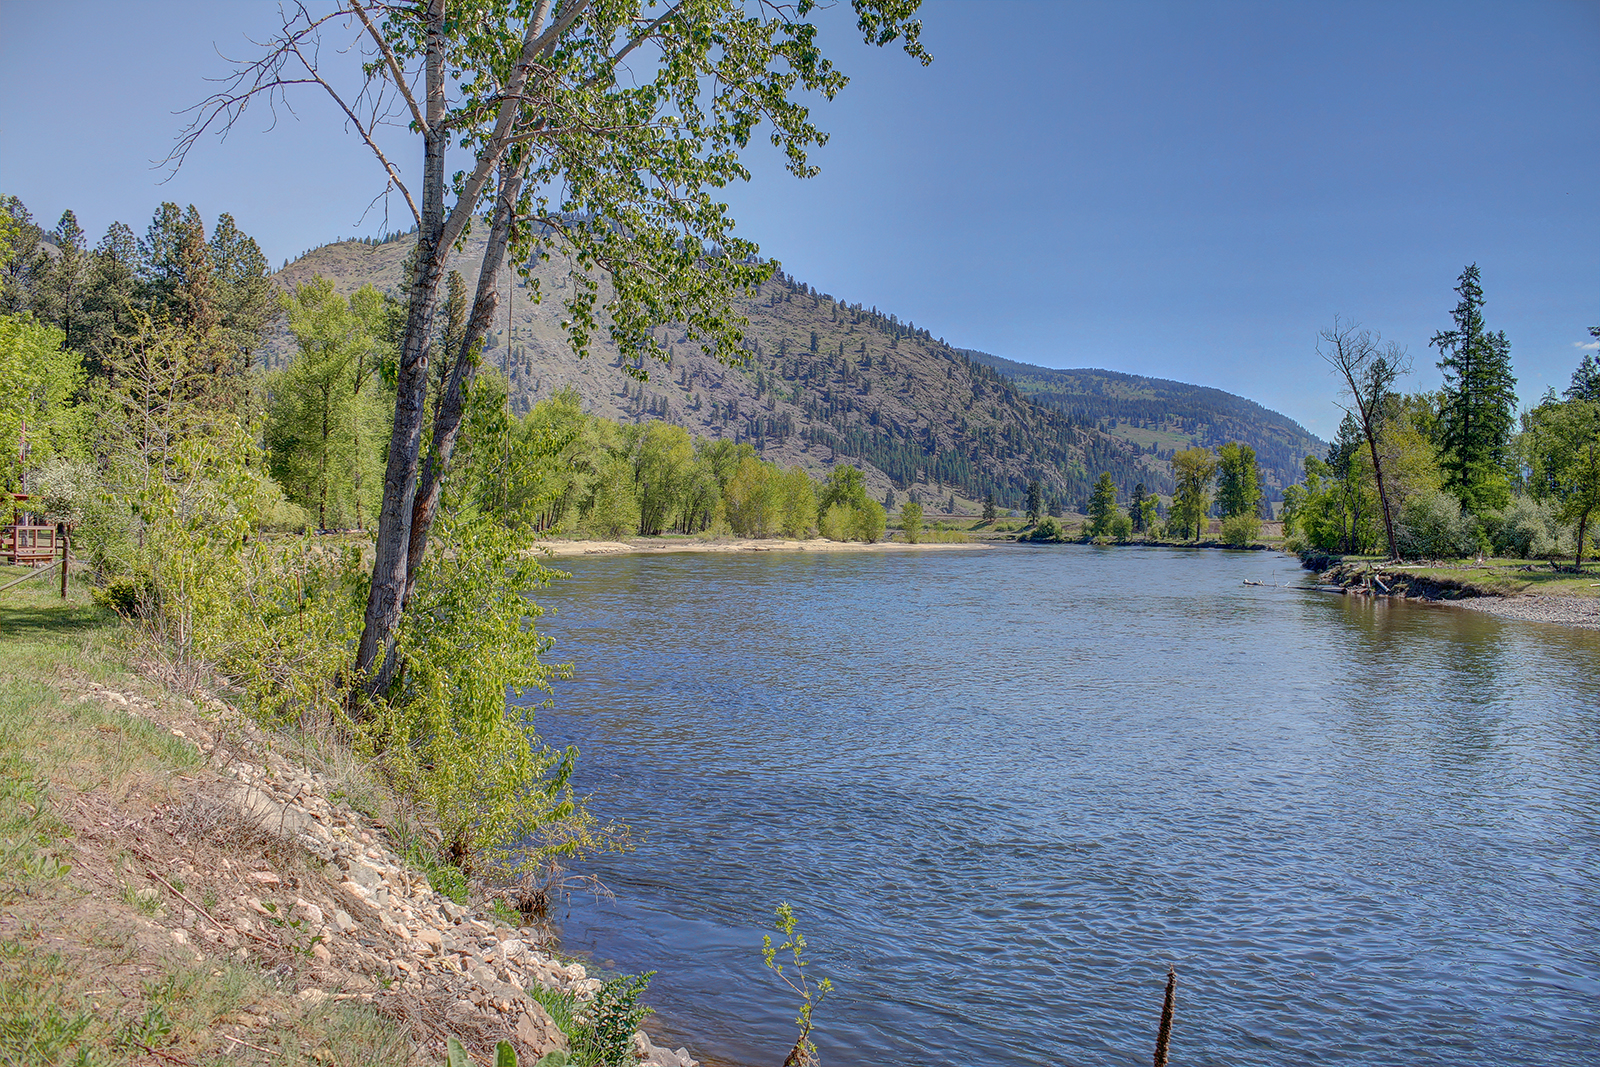 Real Estate Grand Forks Realtor Property river mountain view family ranch farm